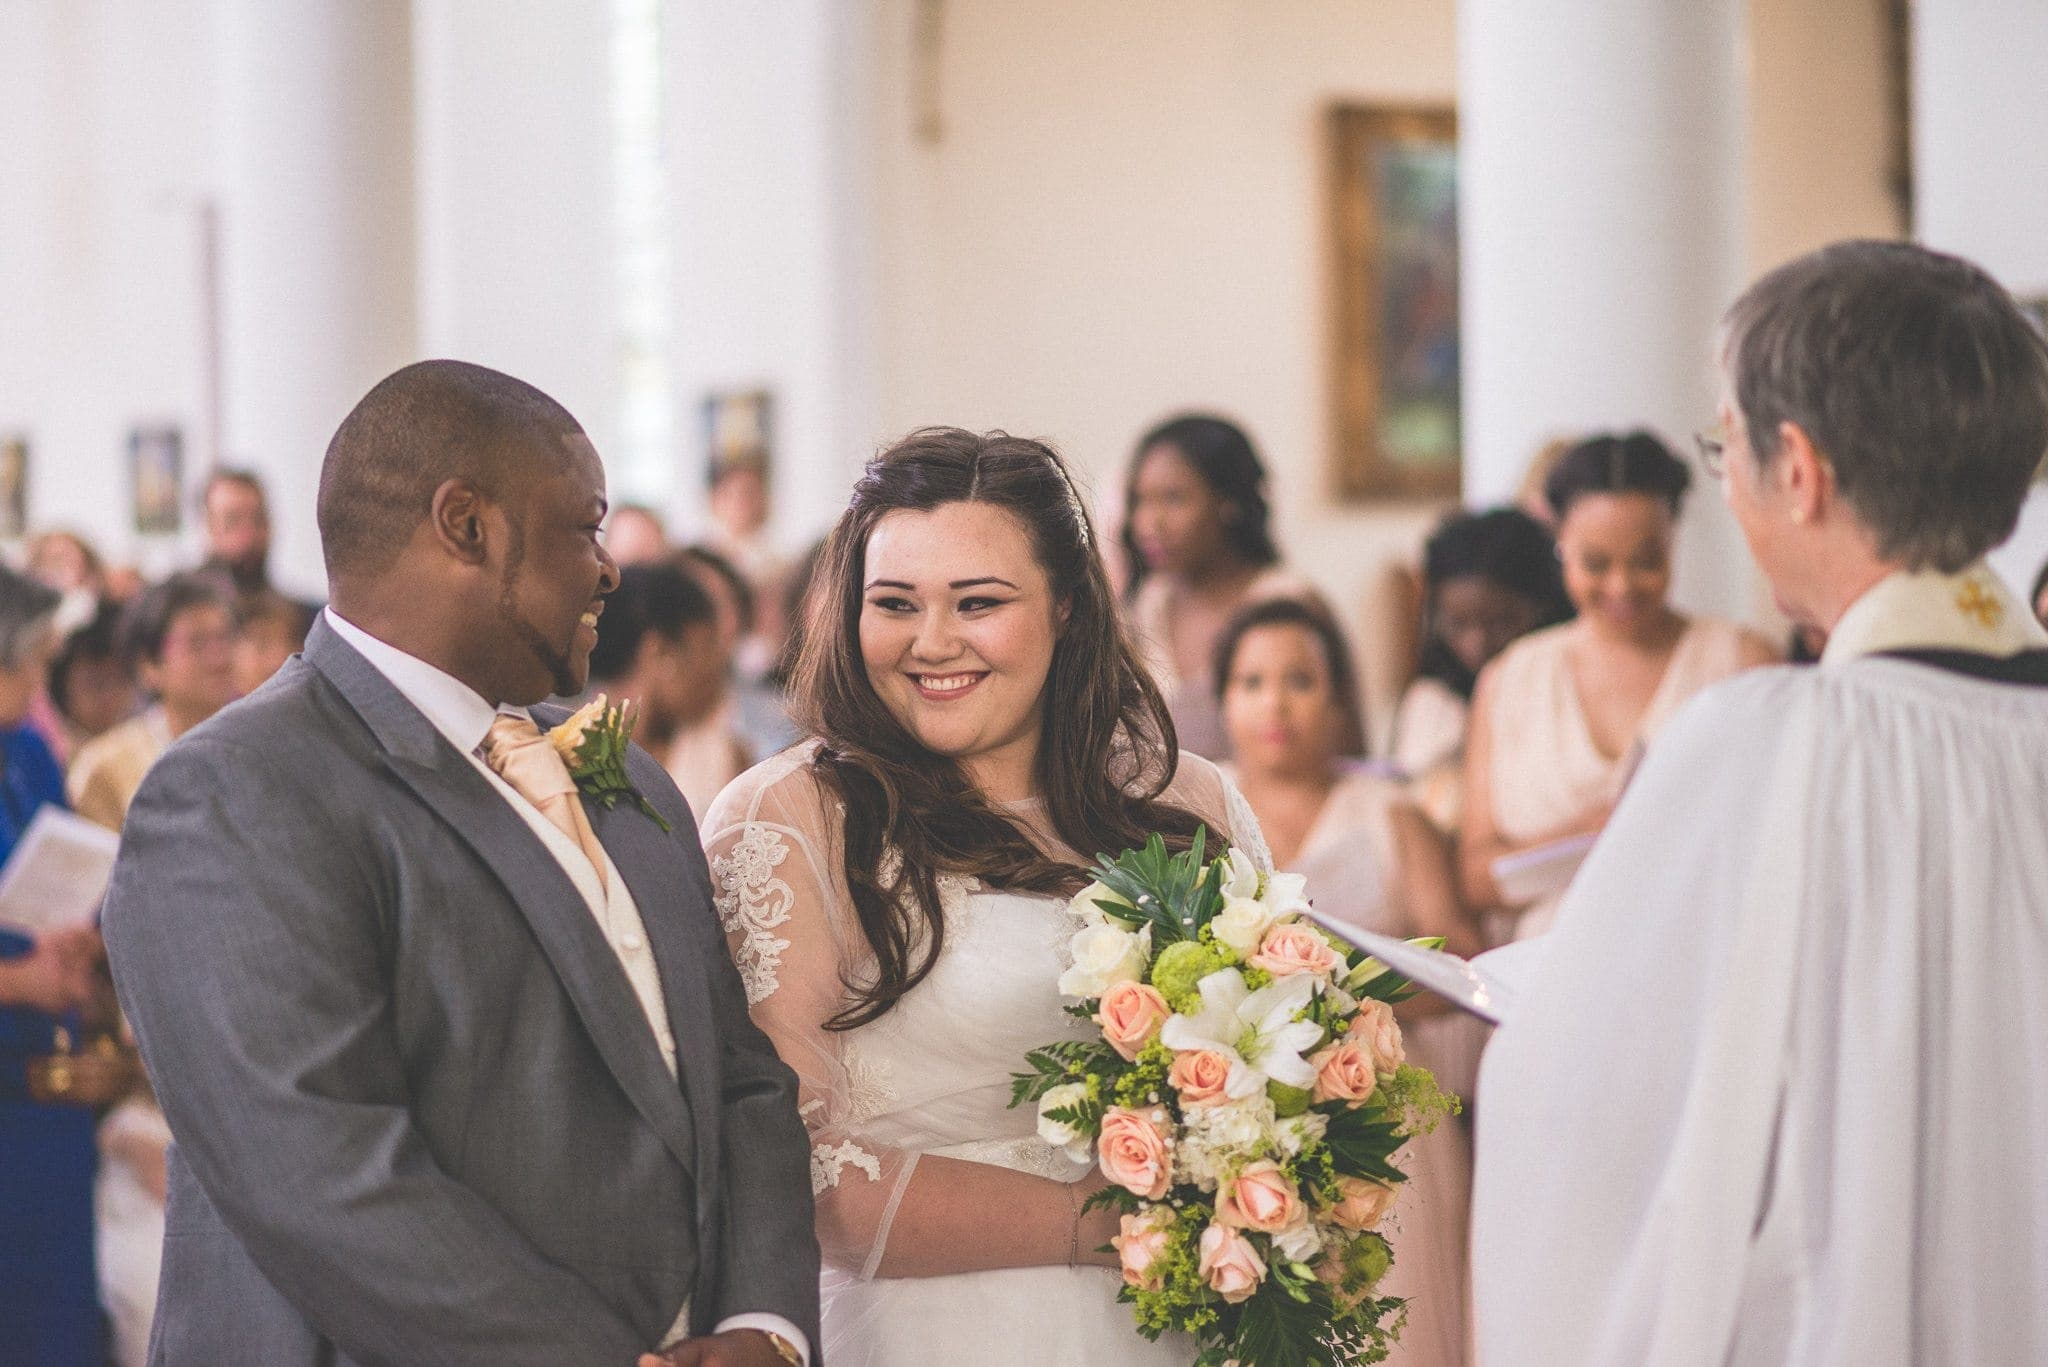 Bride and Groom smile at each other at their wedding ceremony